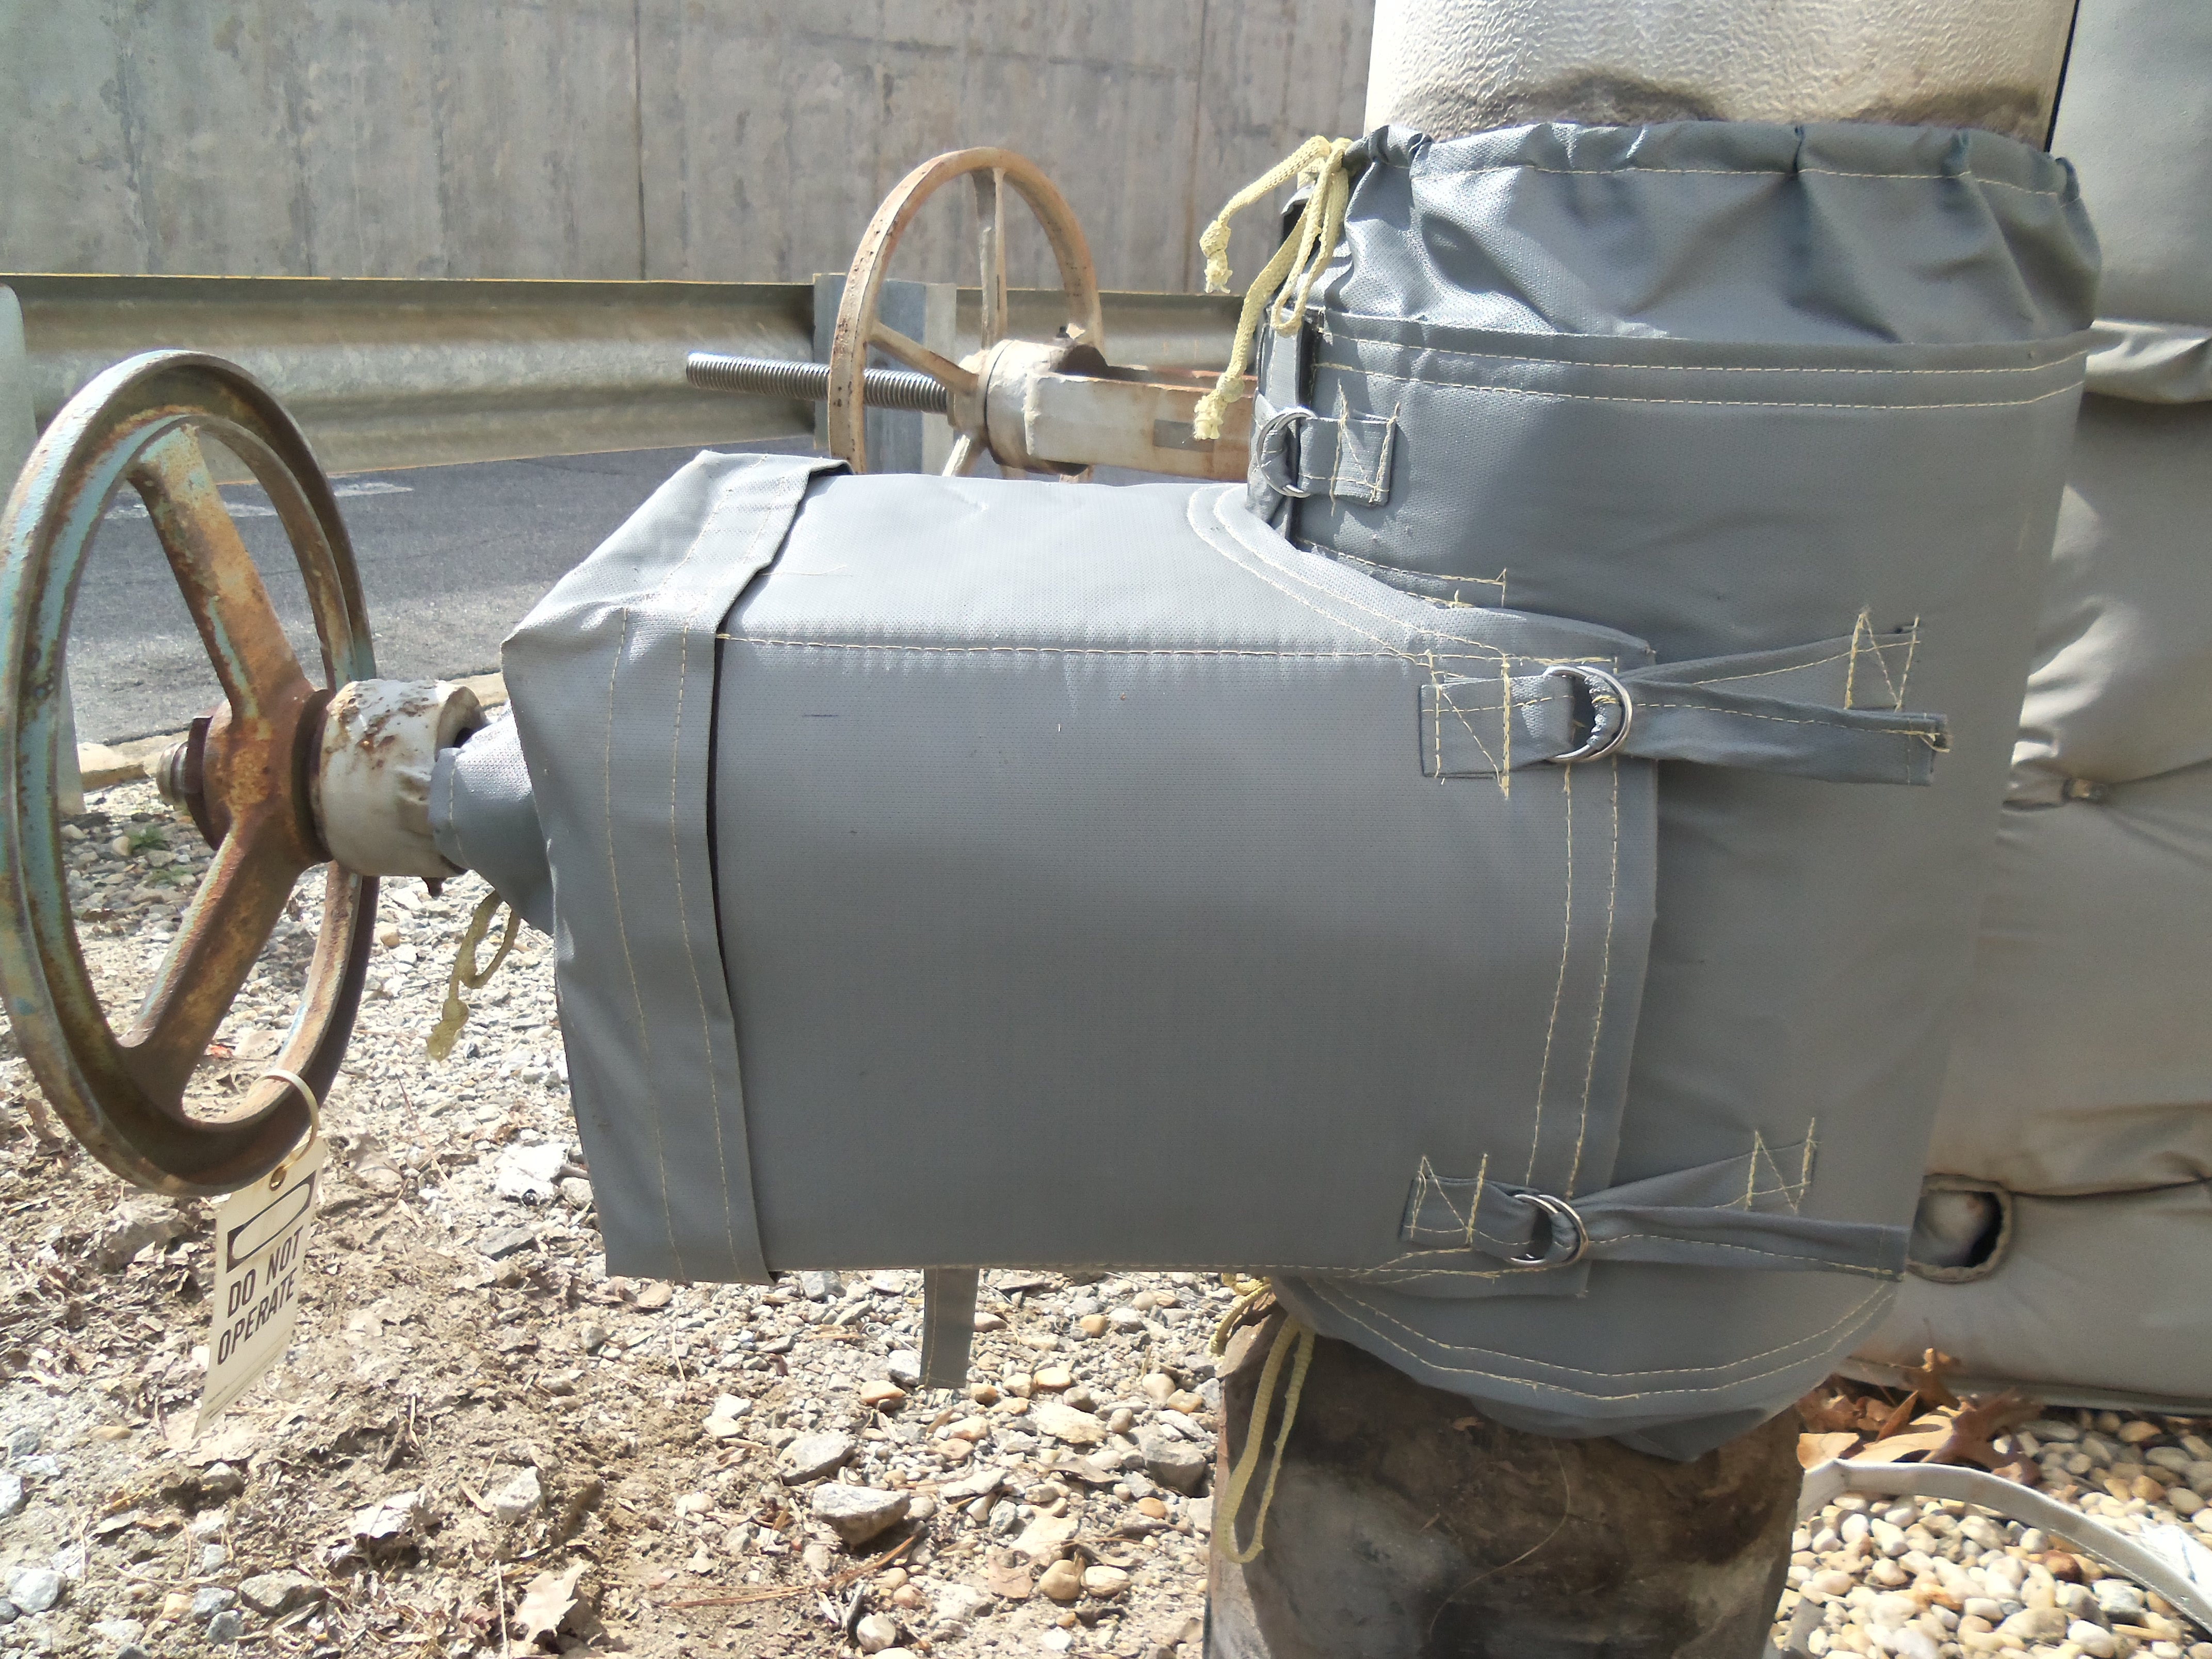 Exterior Valve Insulated by Thermaxx Jackets